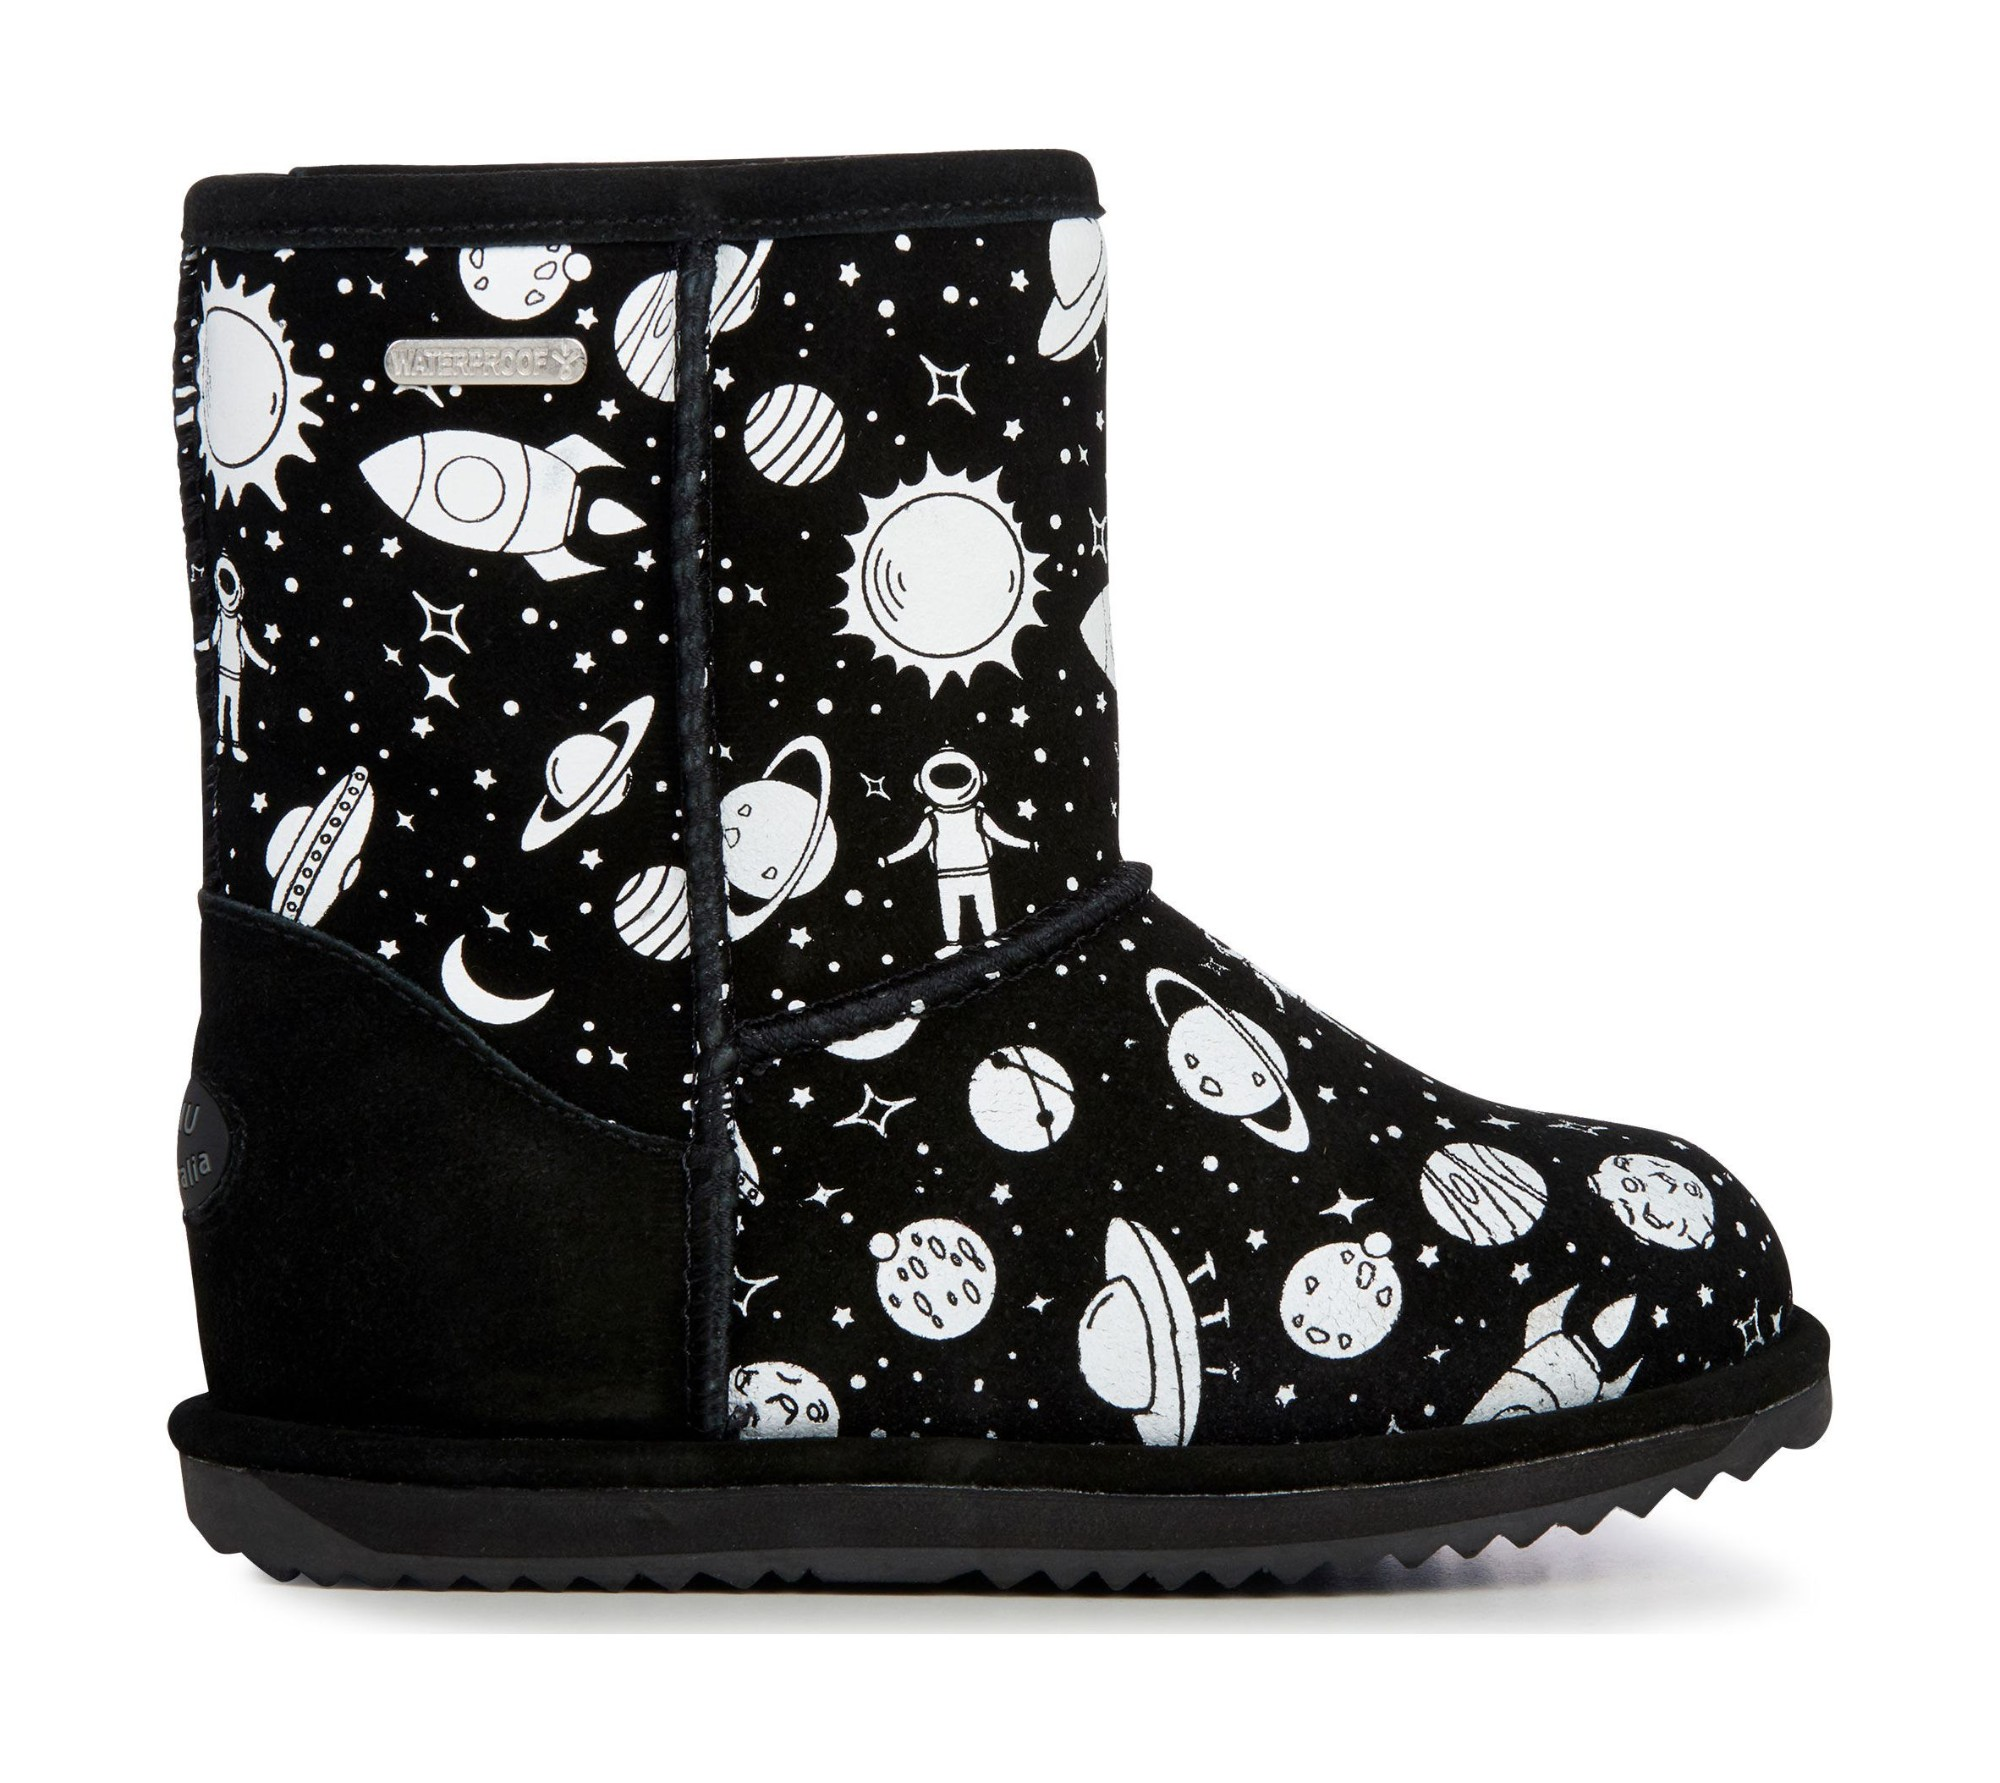 EMU Australia Outer Space Brumby Black 29,5